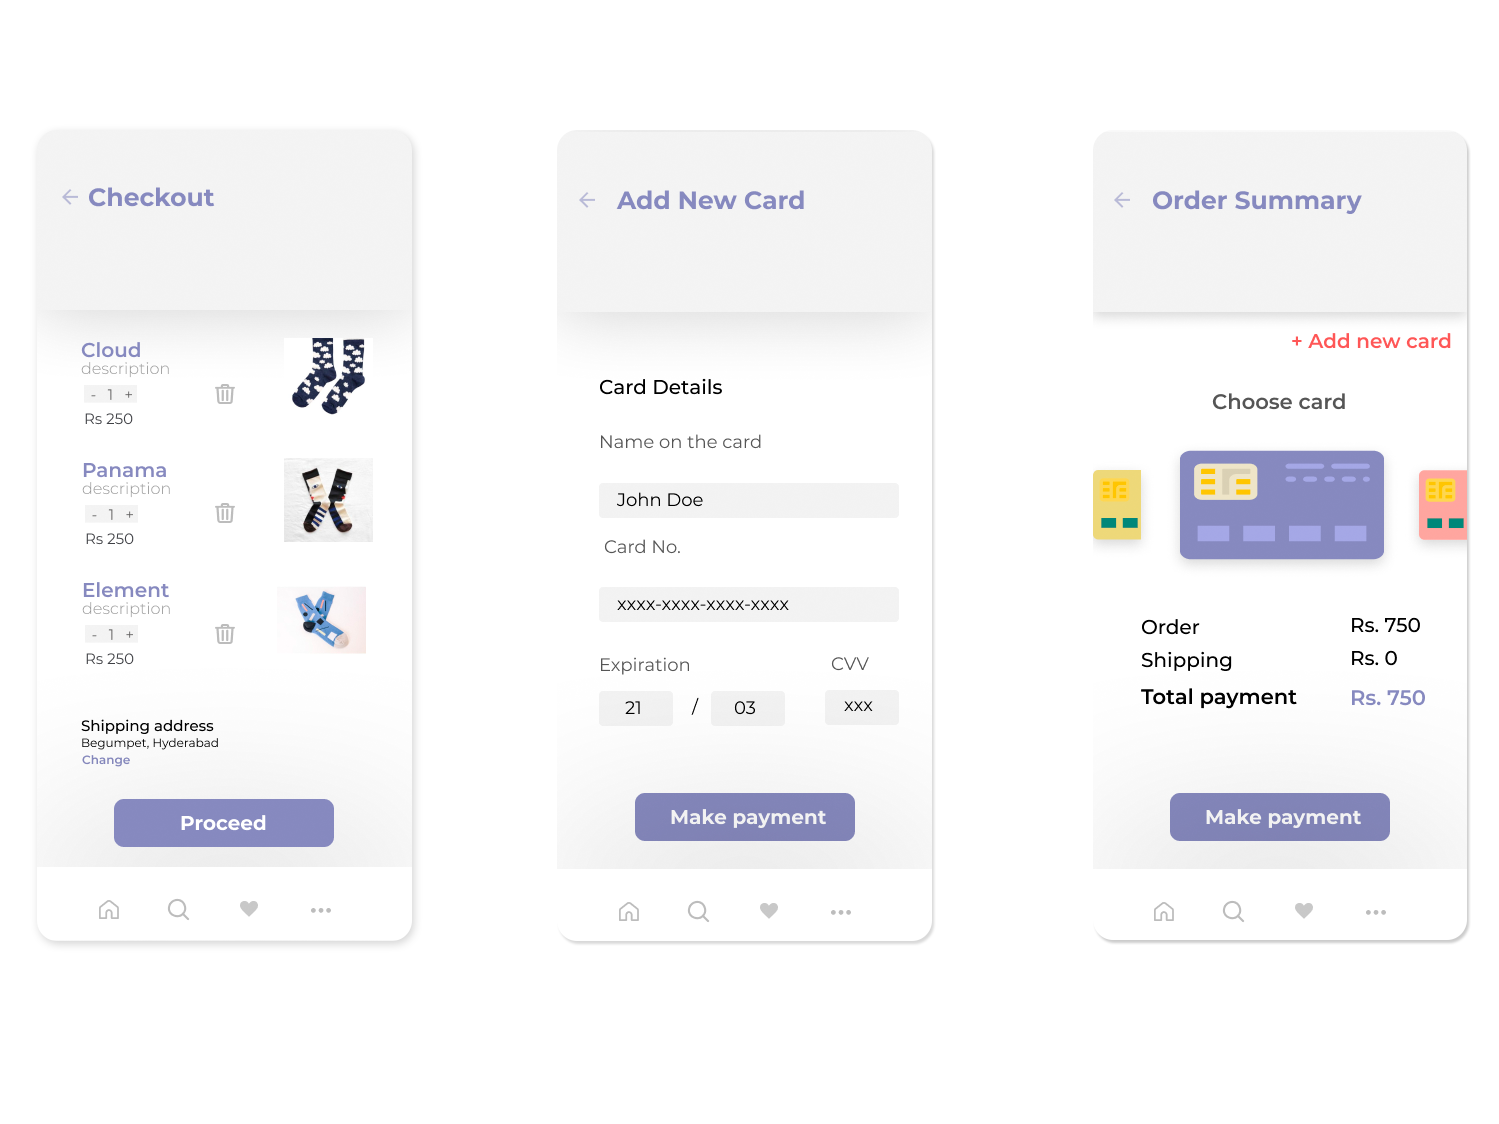 Checkout form UI design ideas by Archana Chittoor on Dribbble